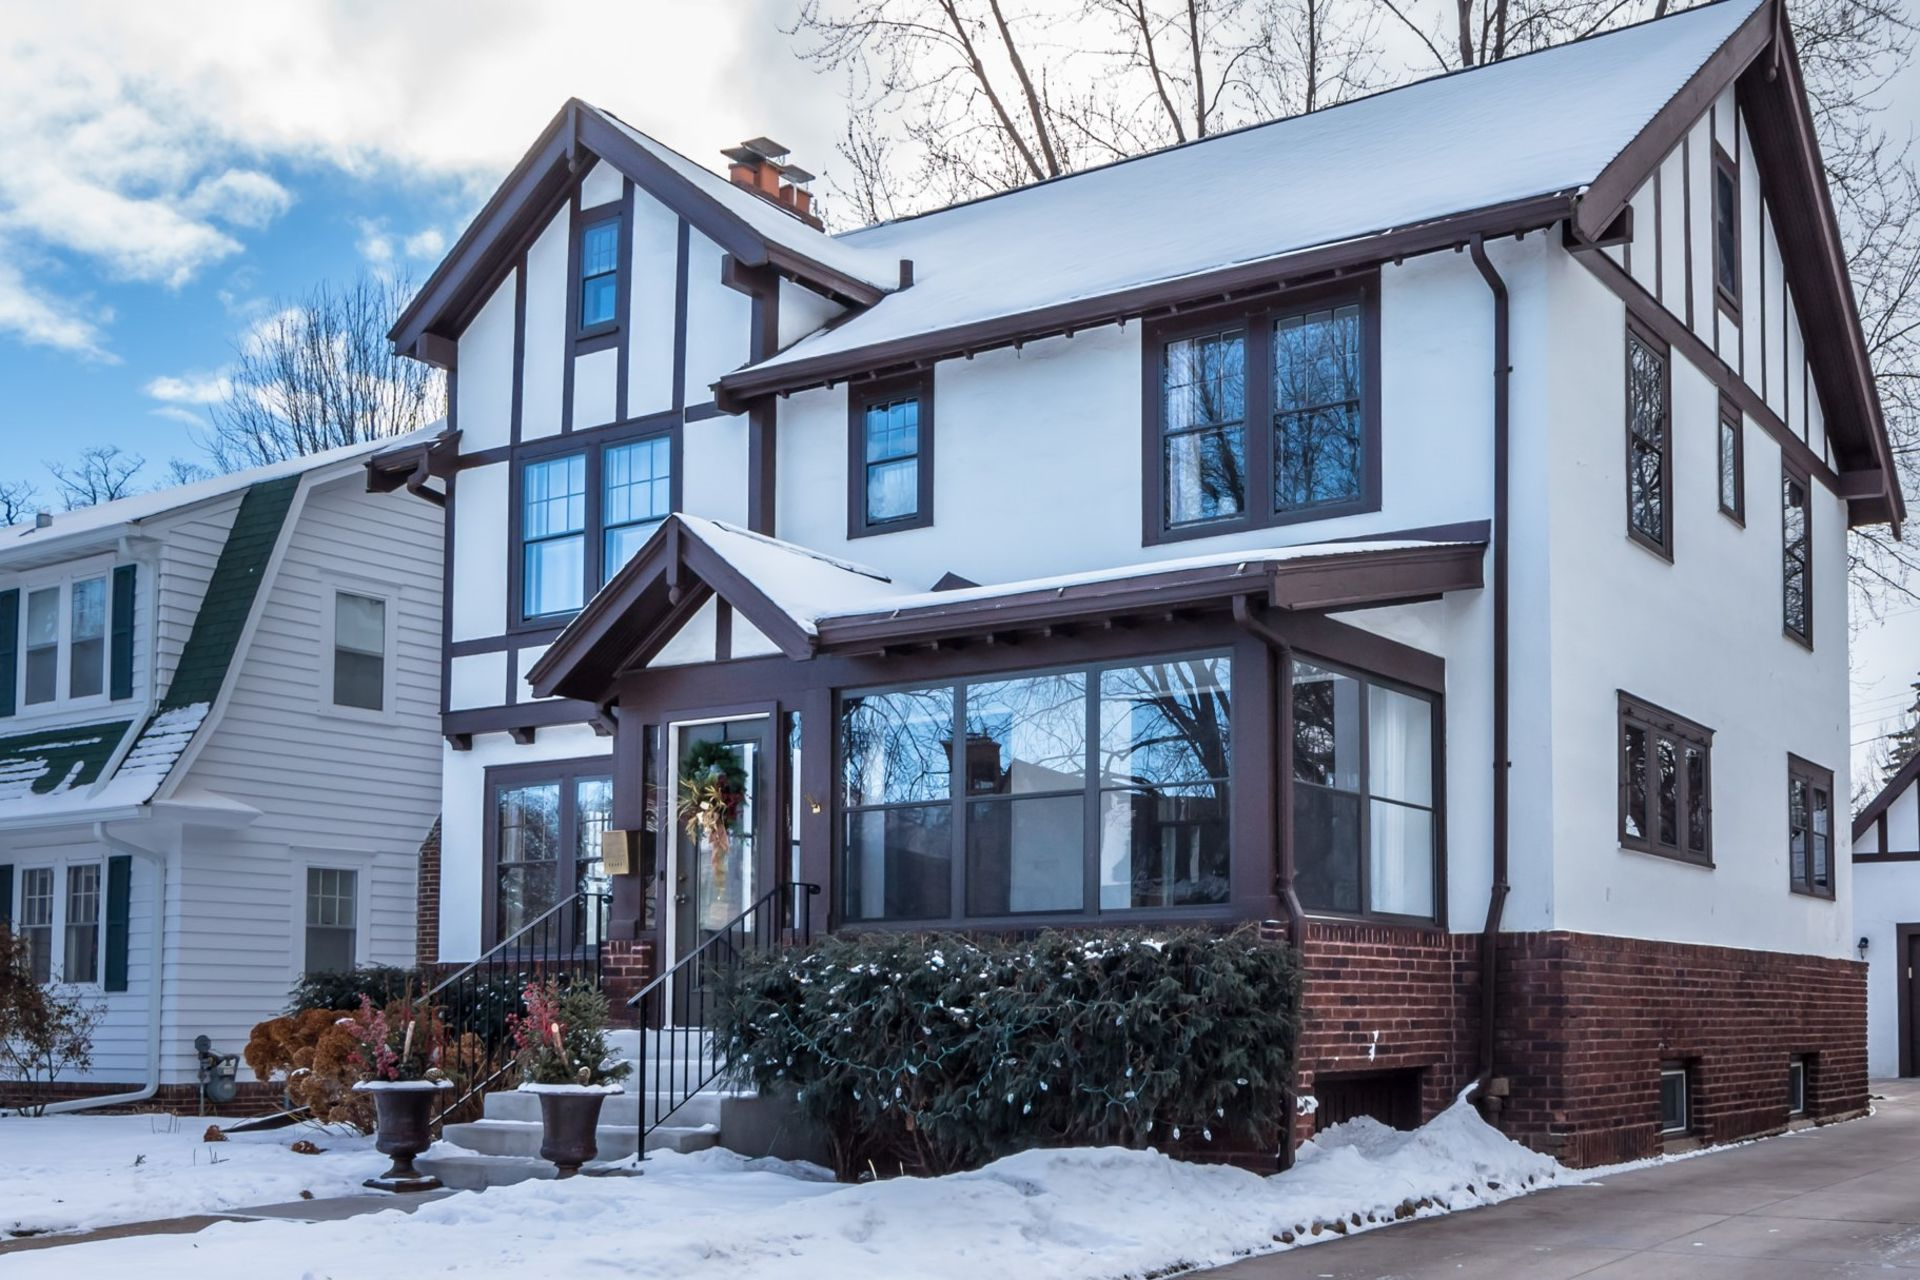 3 Good Reasons to Sell Your Home in the Winter